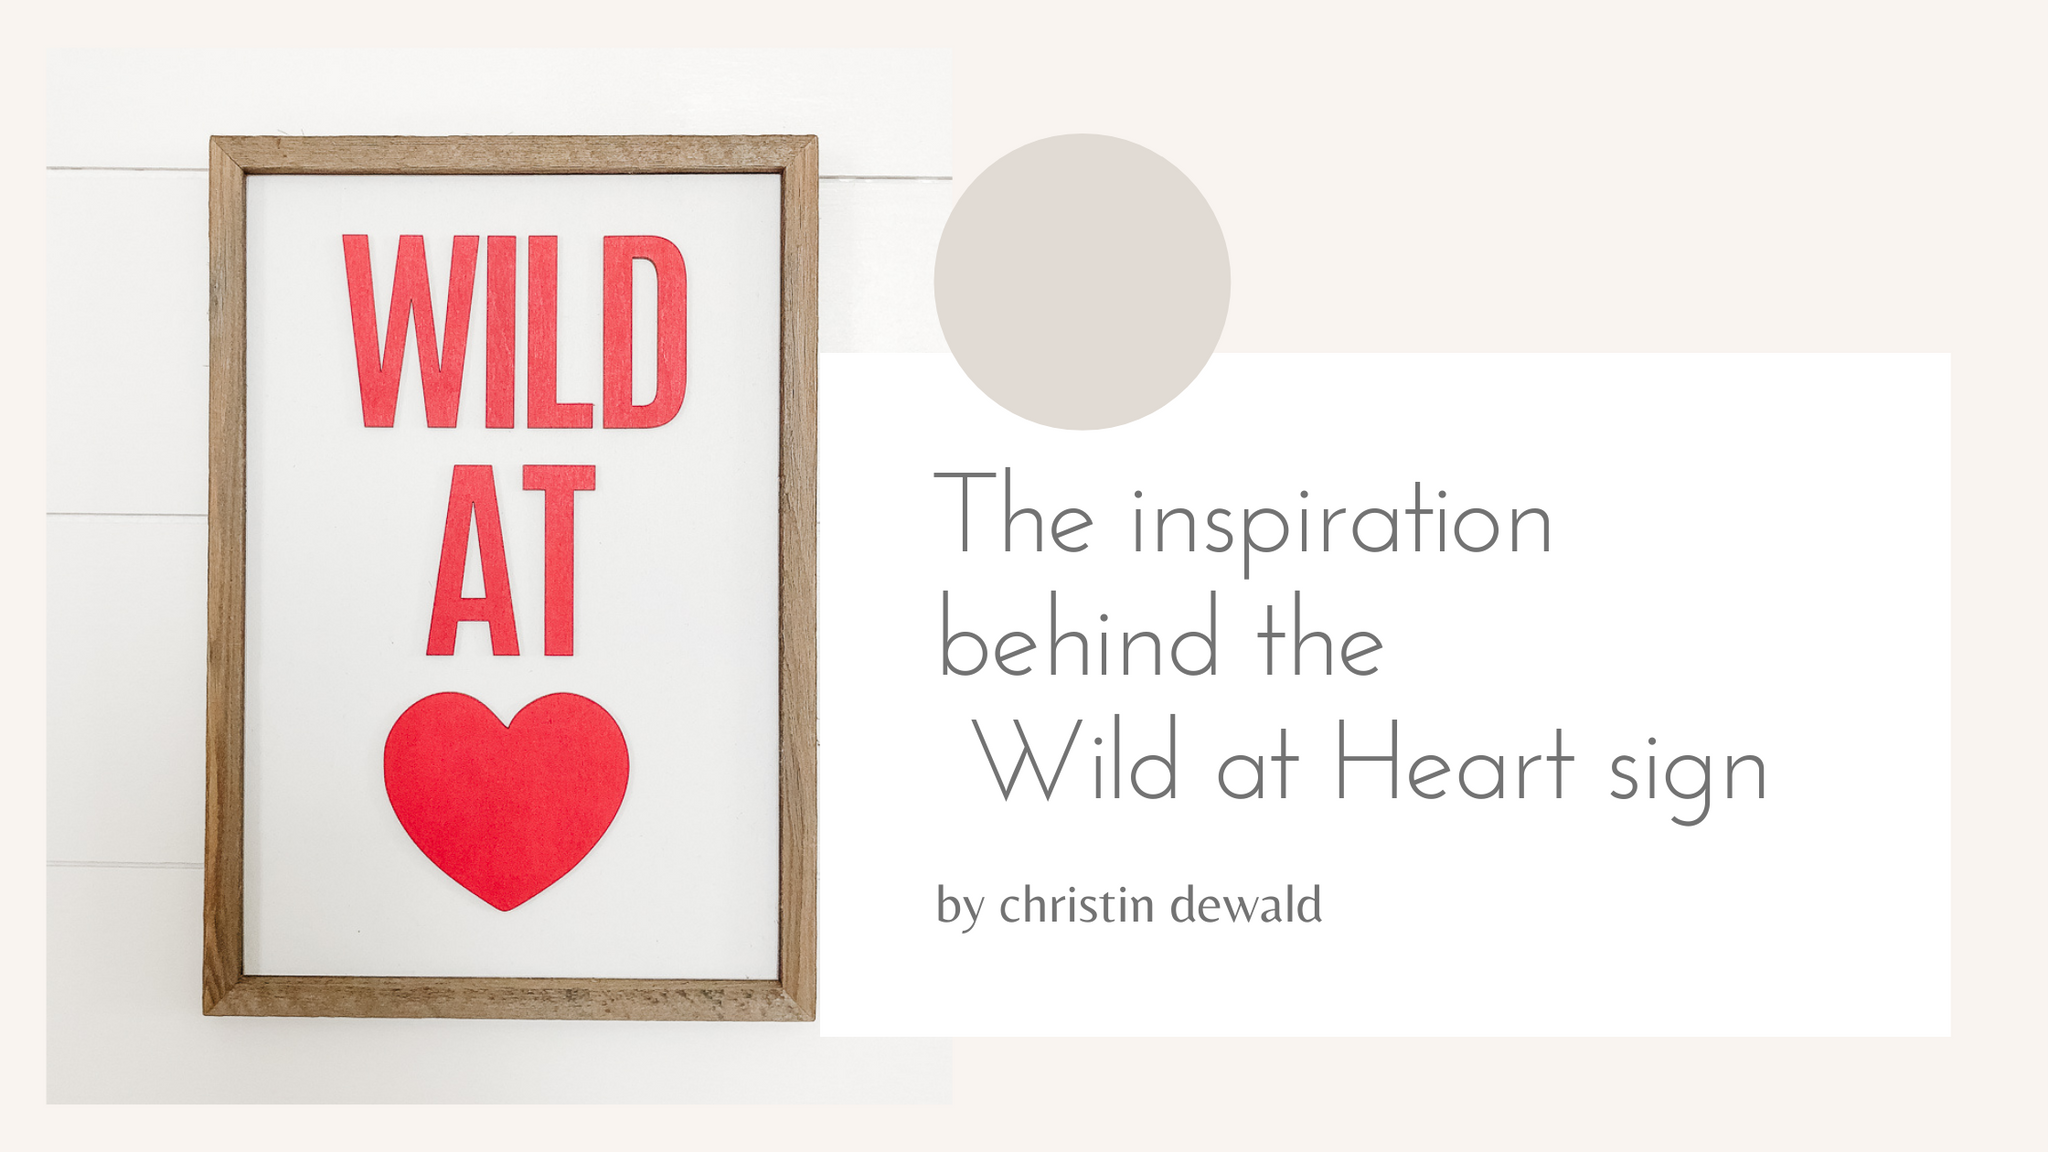 The inspiration behind the Wild at Heart sign